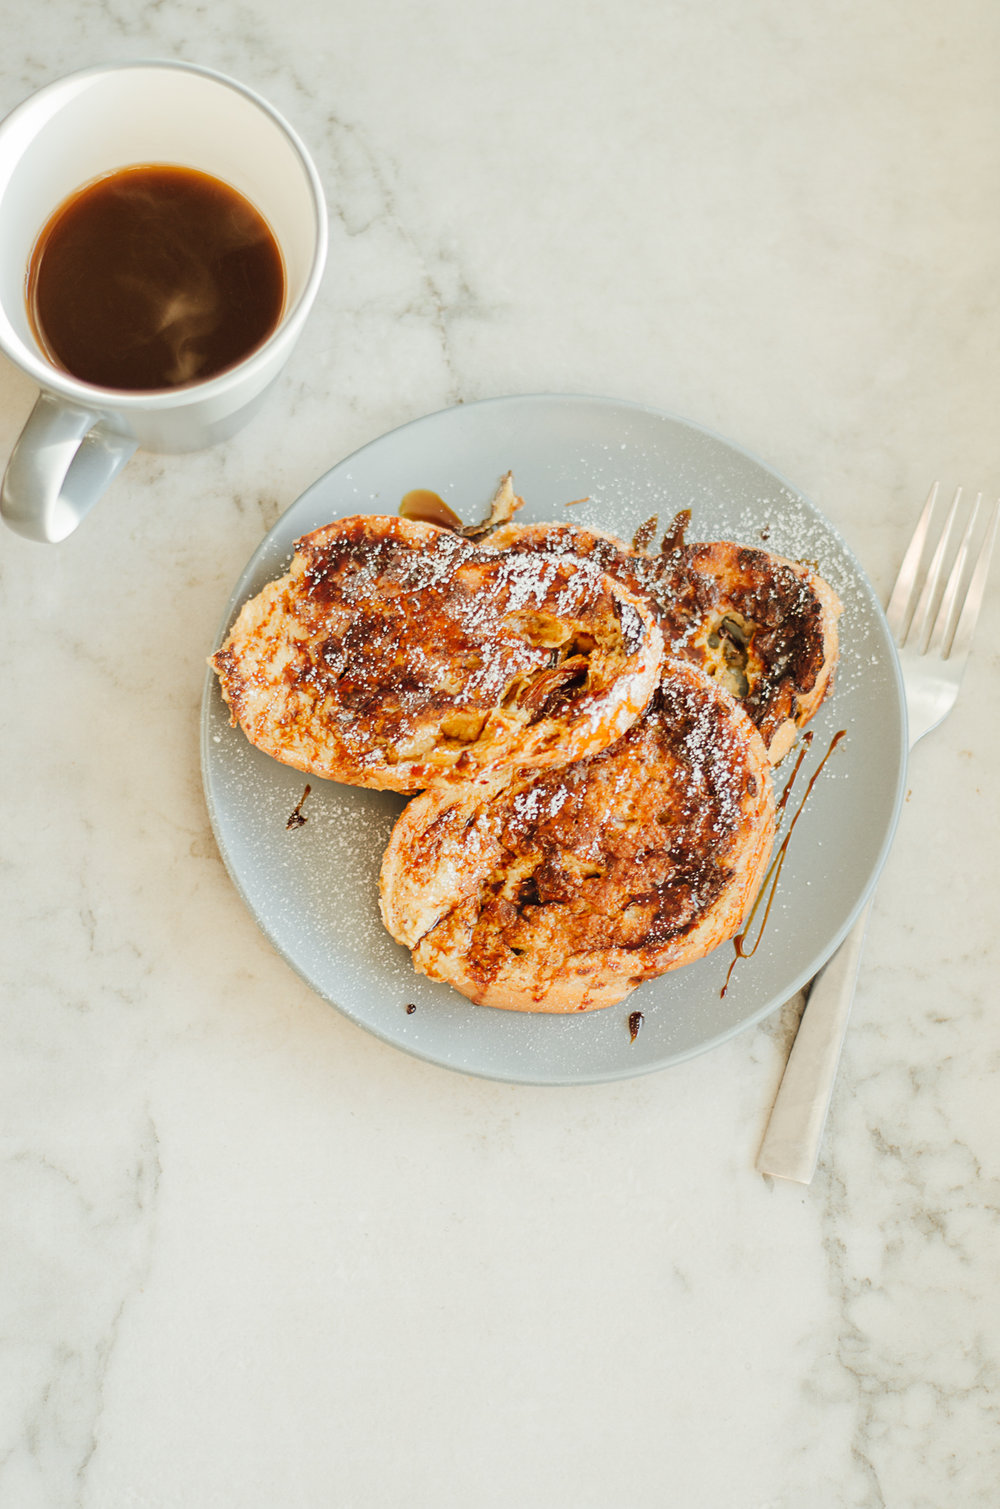 easy french toast with old sourdough bread